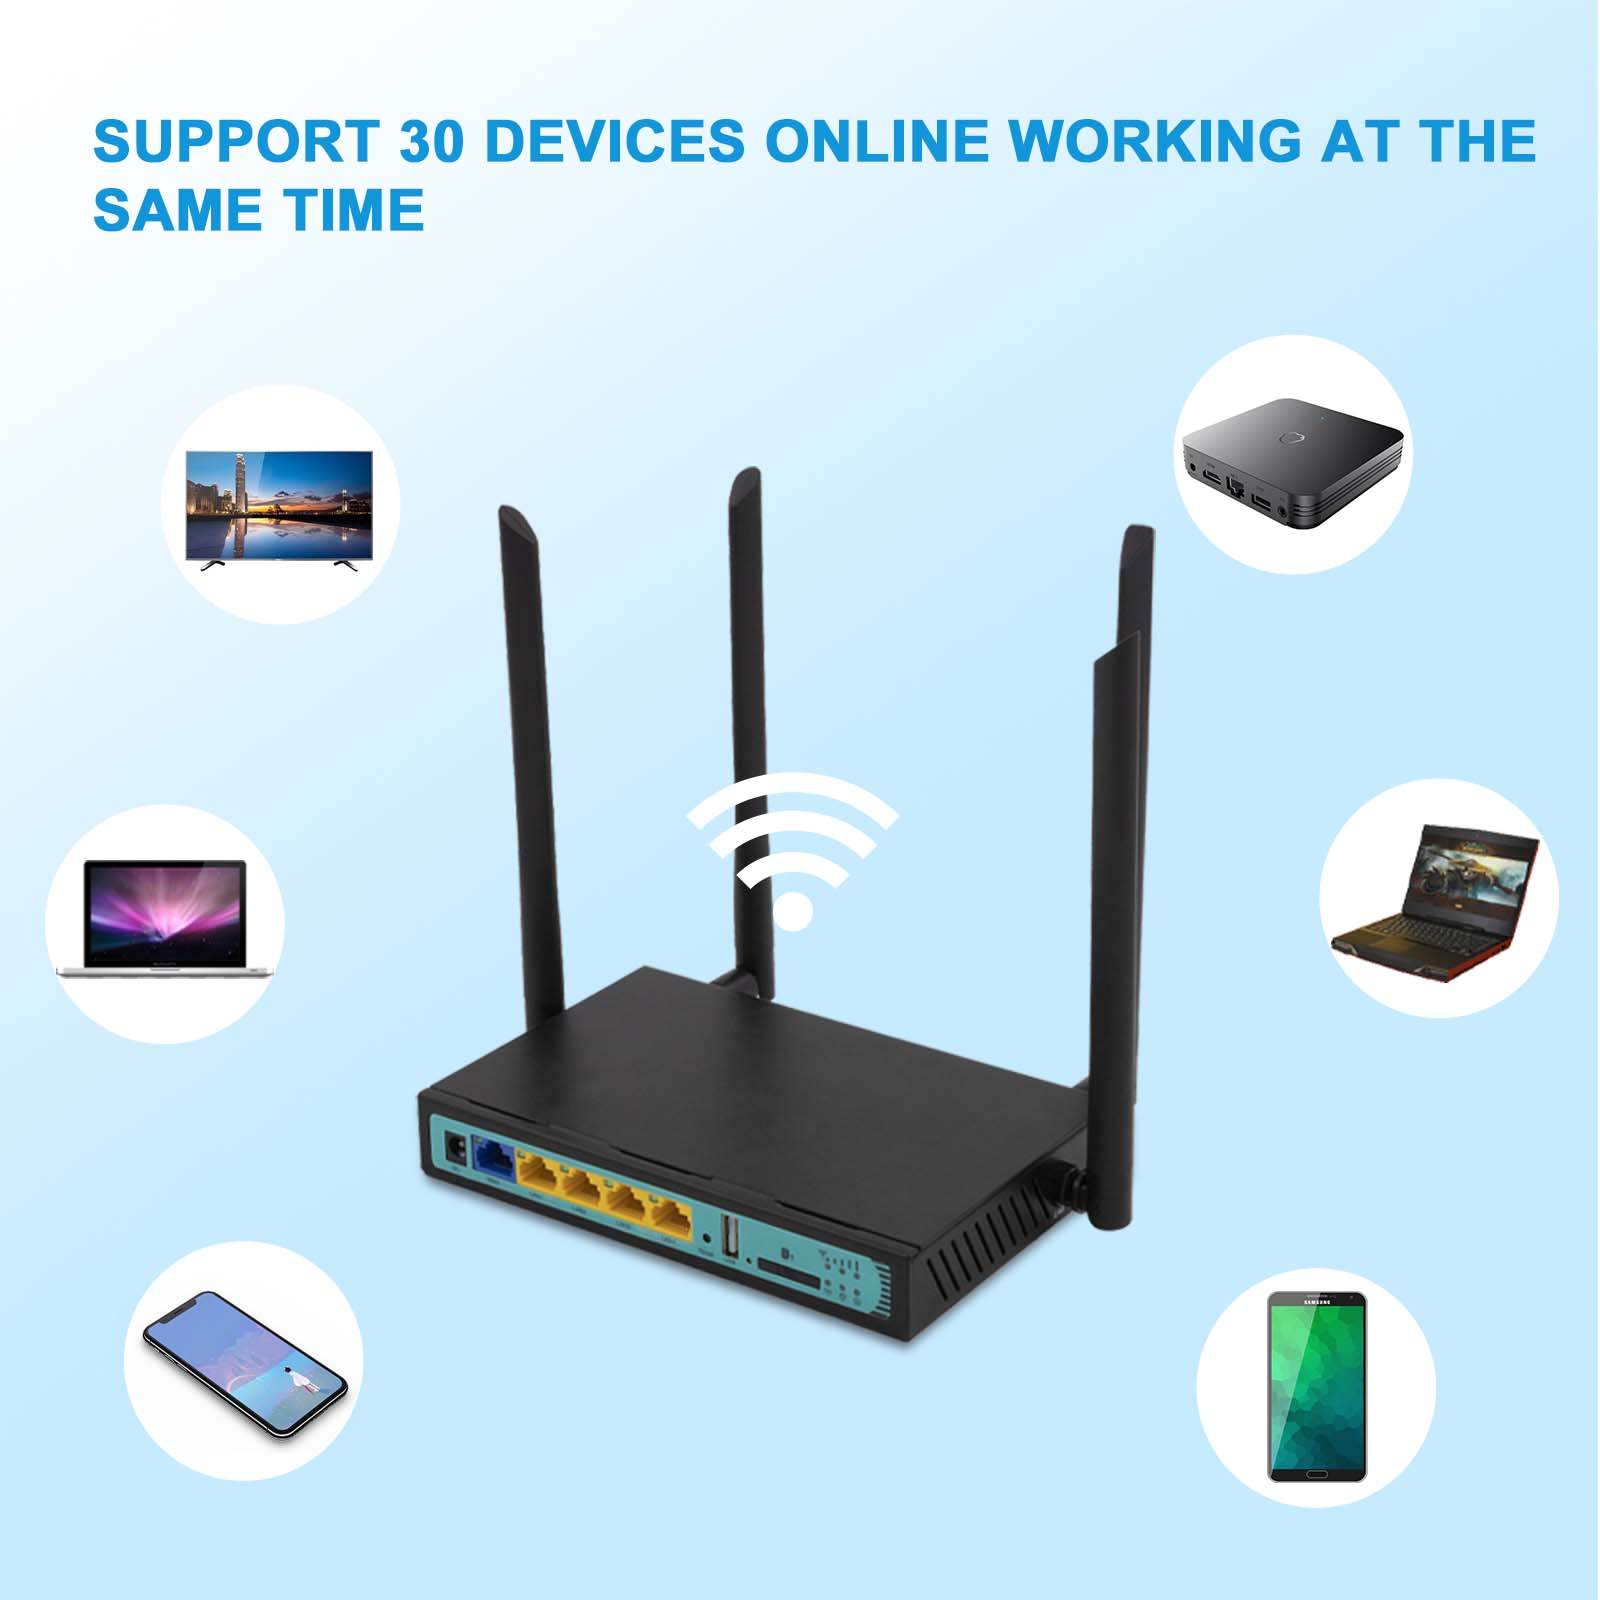 4G Wi-Fi Router ZBT-WE2416 5Port Router With SIM Card USB WAP2 802.11n/u/b/g 300Mbps 2.4G Router LAN WAN 10/100M PCI-E Routet